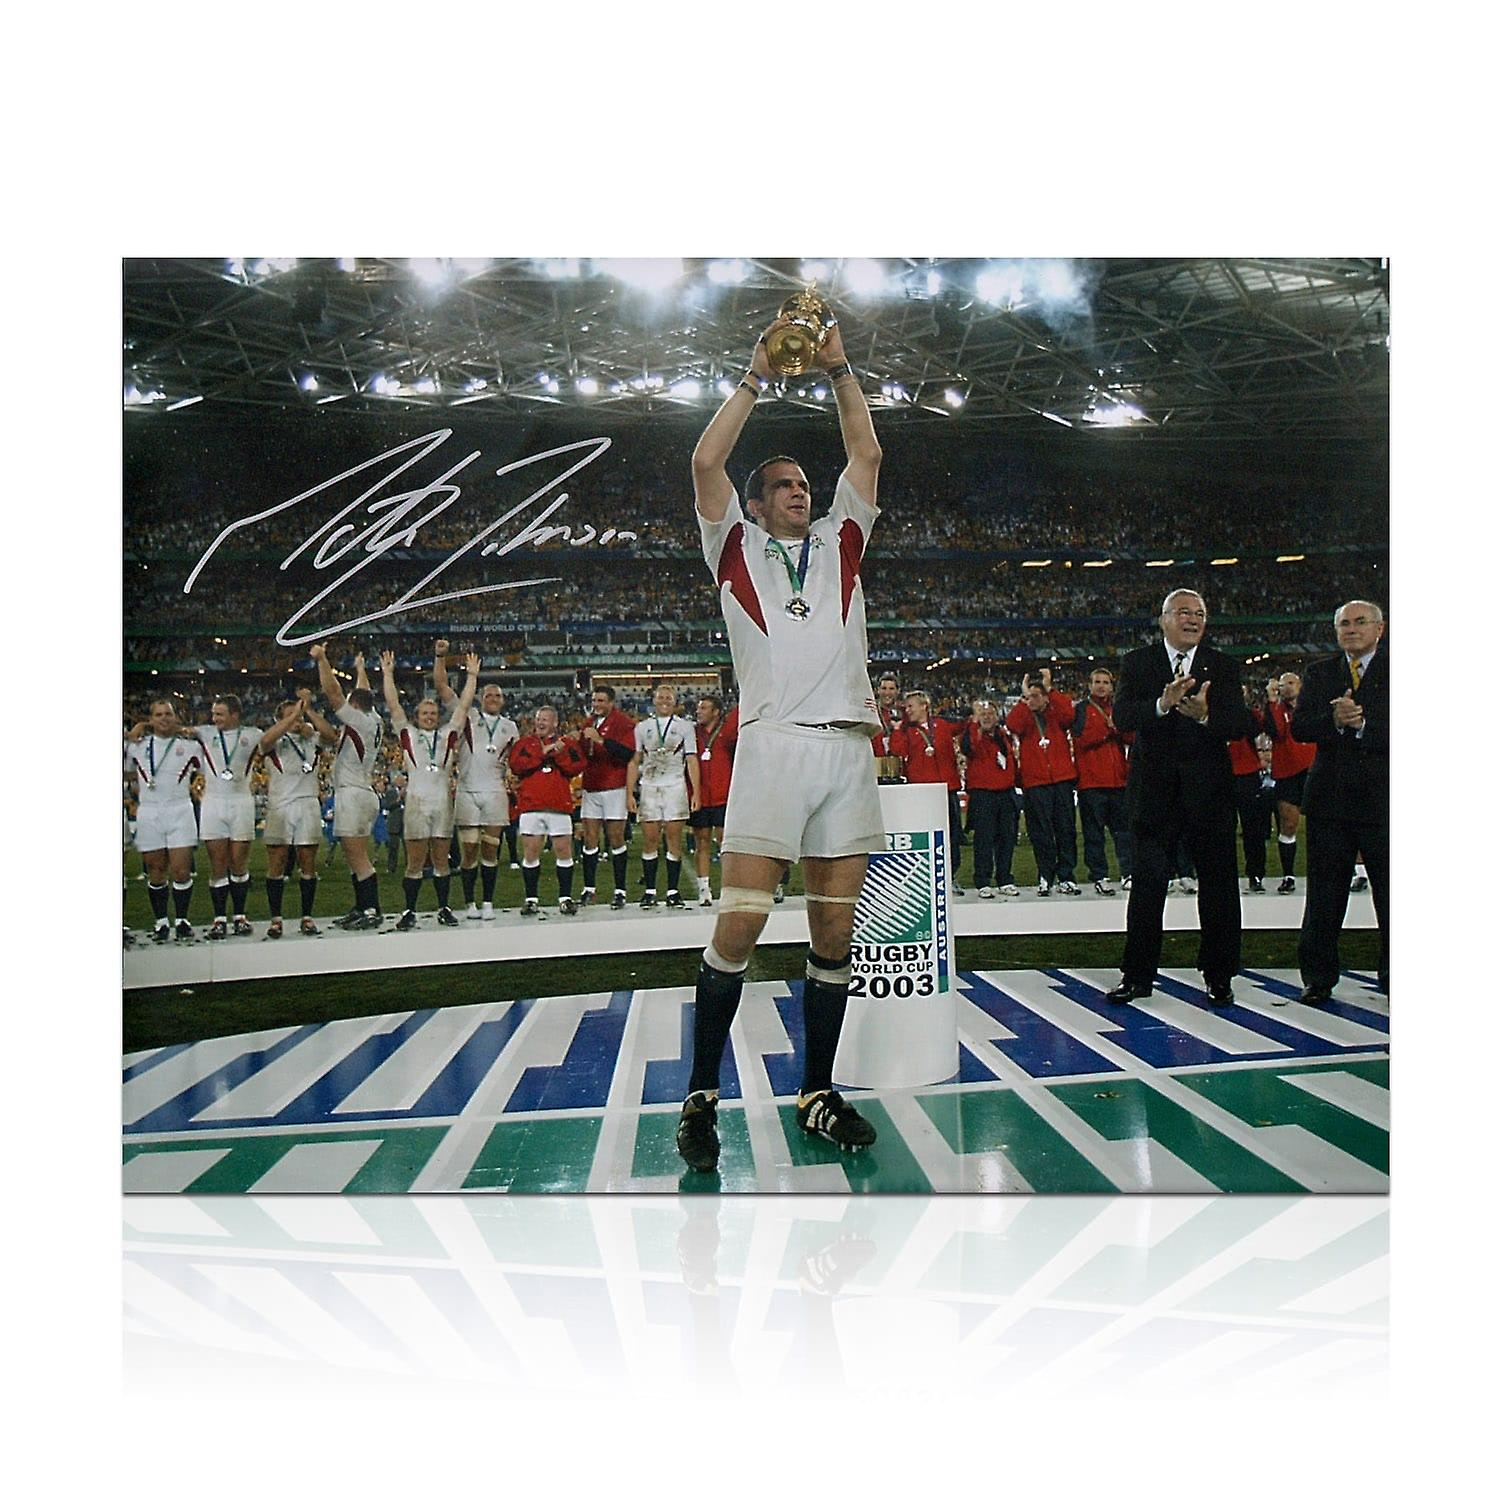 Martin Johnson Signed England Rugby Photo: On The Podium In Gift Box